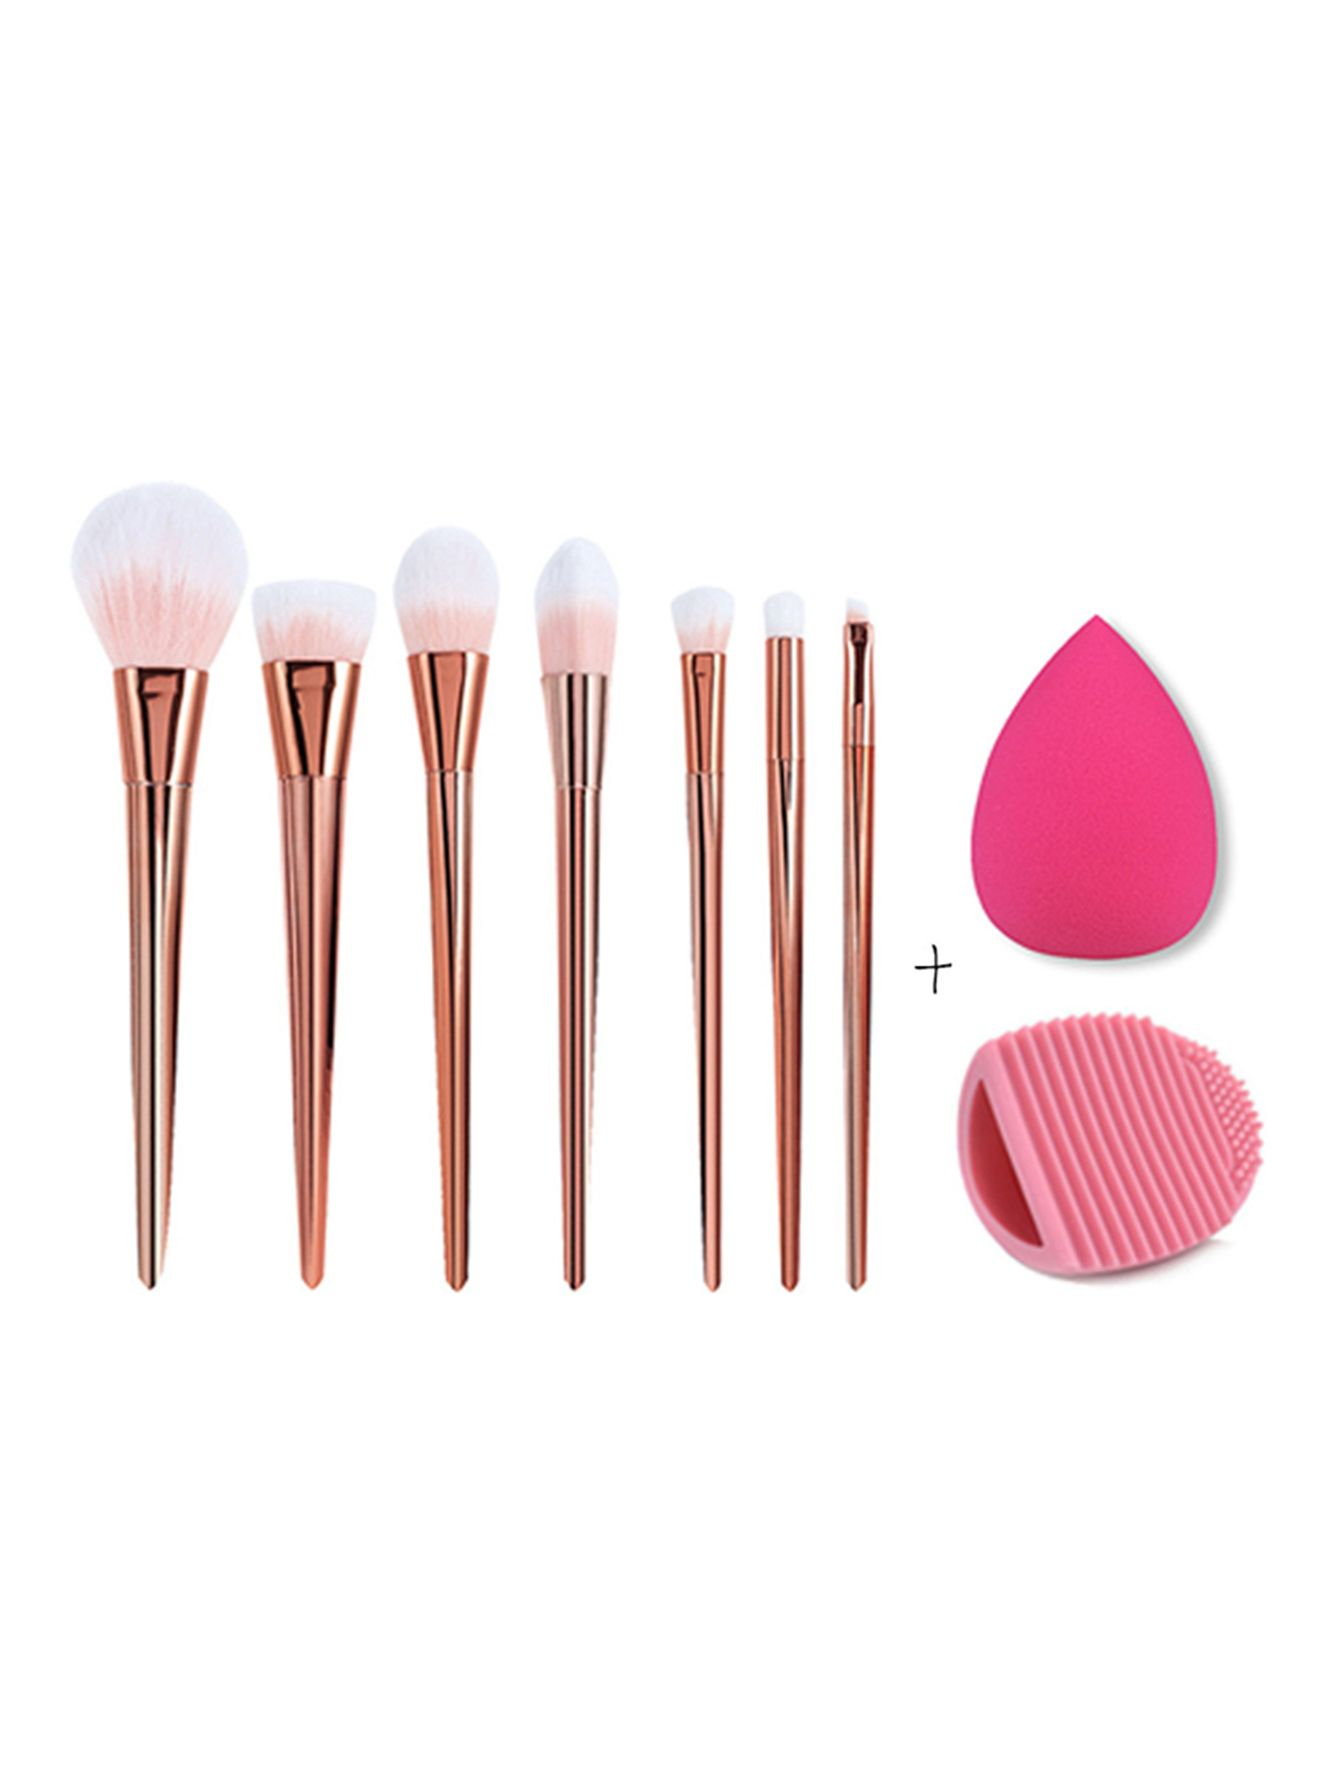 976c8fdf7e Shop Makeup Brush Set With Puff online. SheIn offers Makeup Brush Set With  Puff & more to fit your fashionable needs.